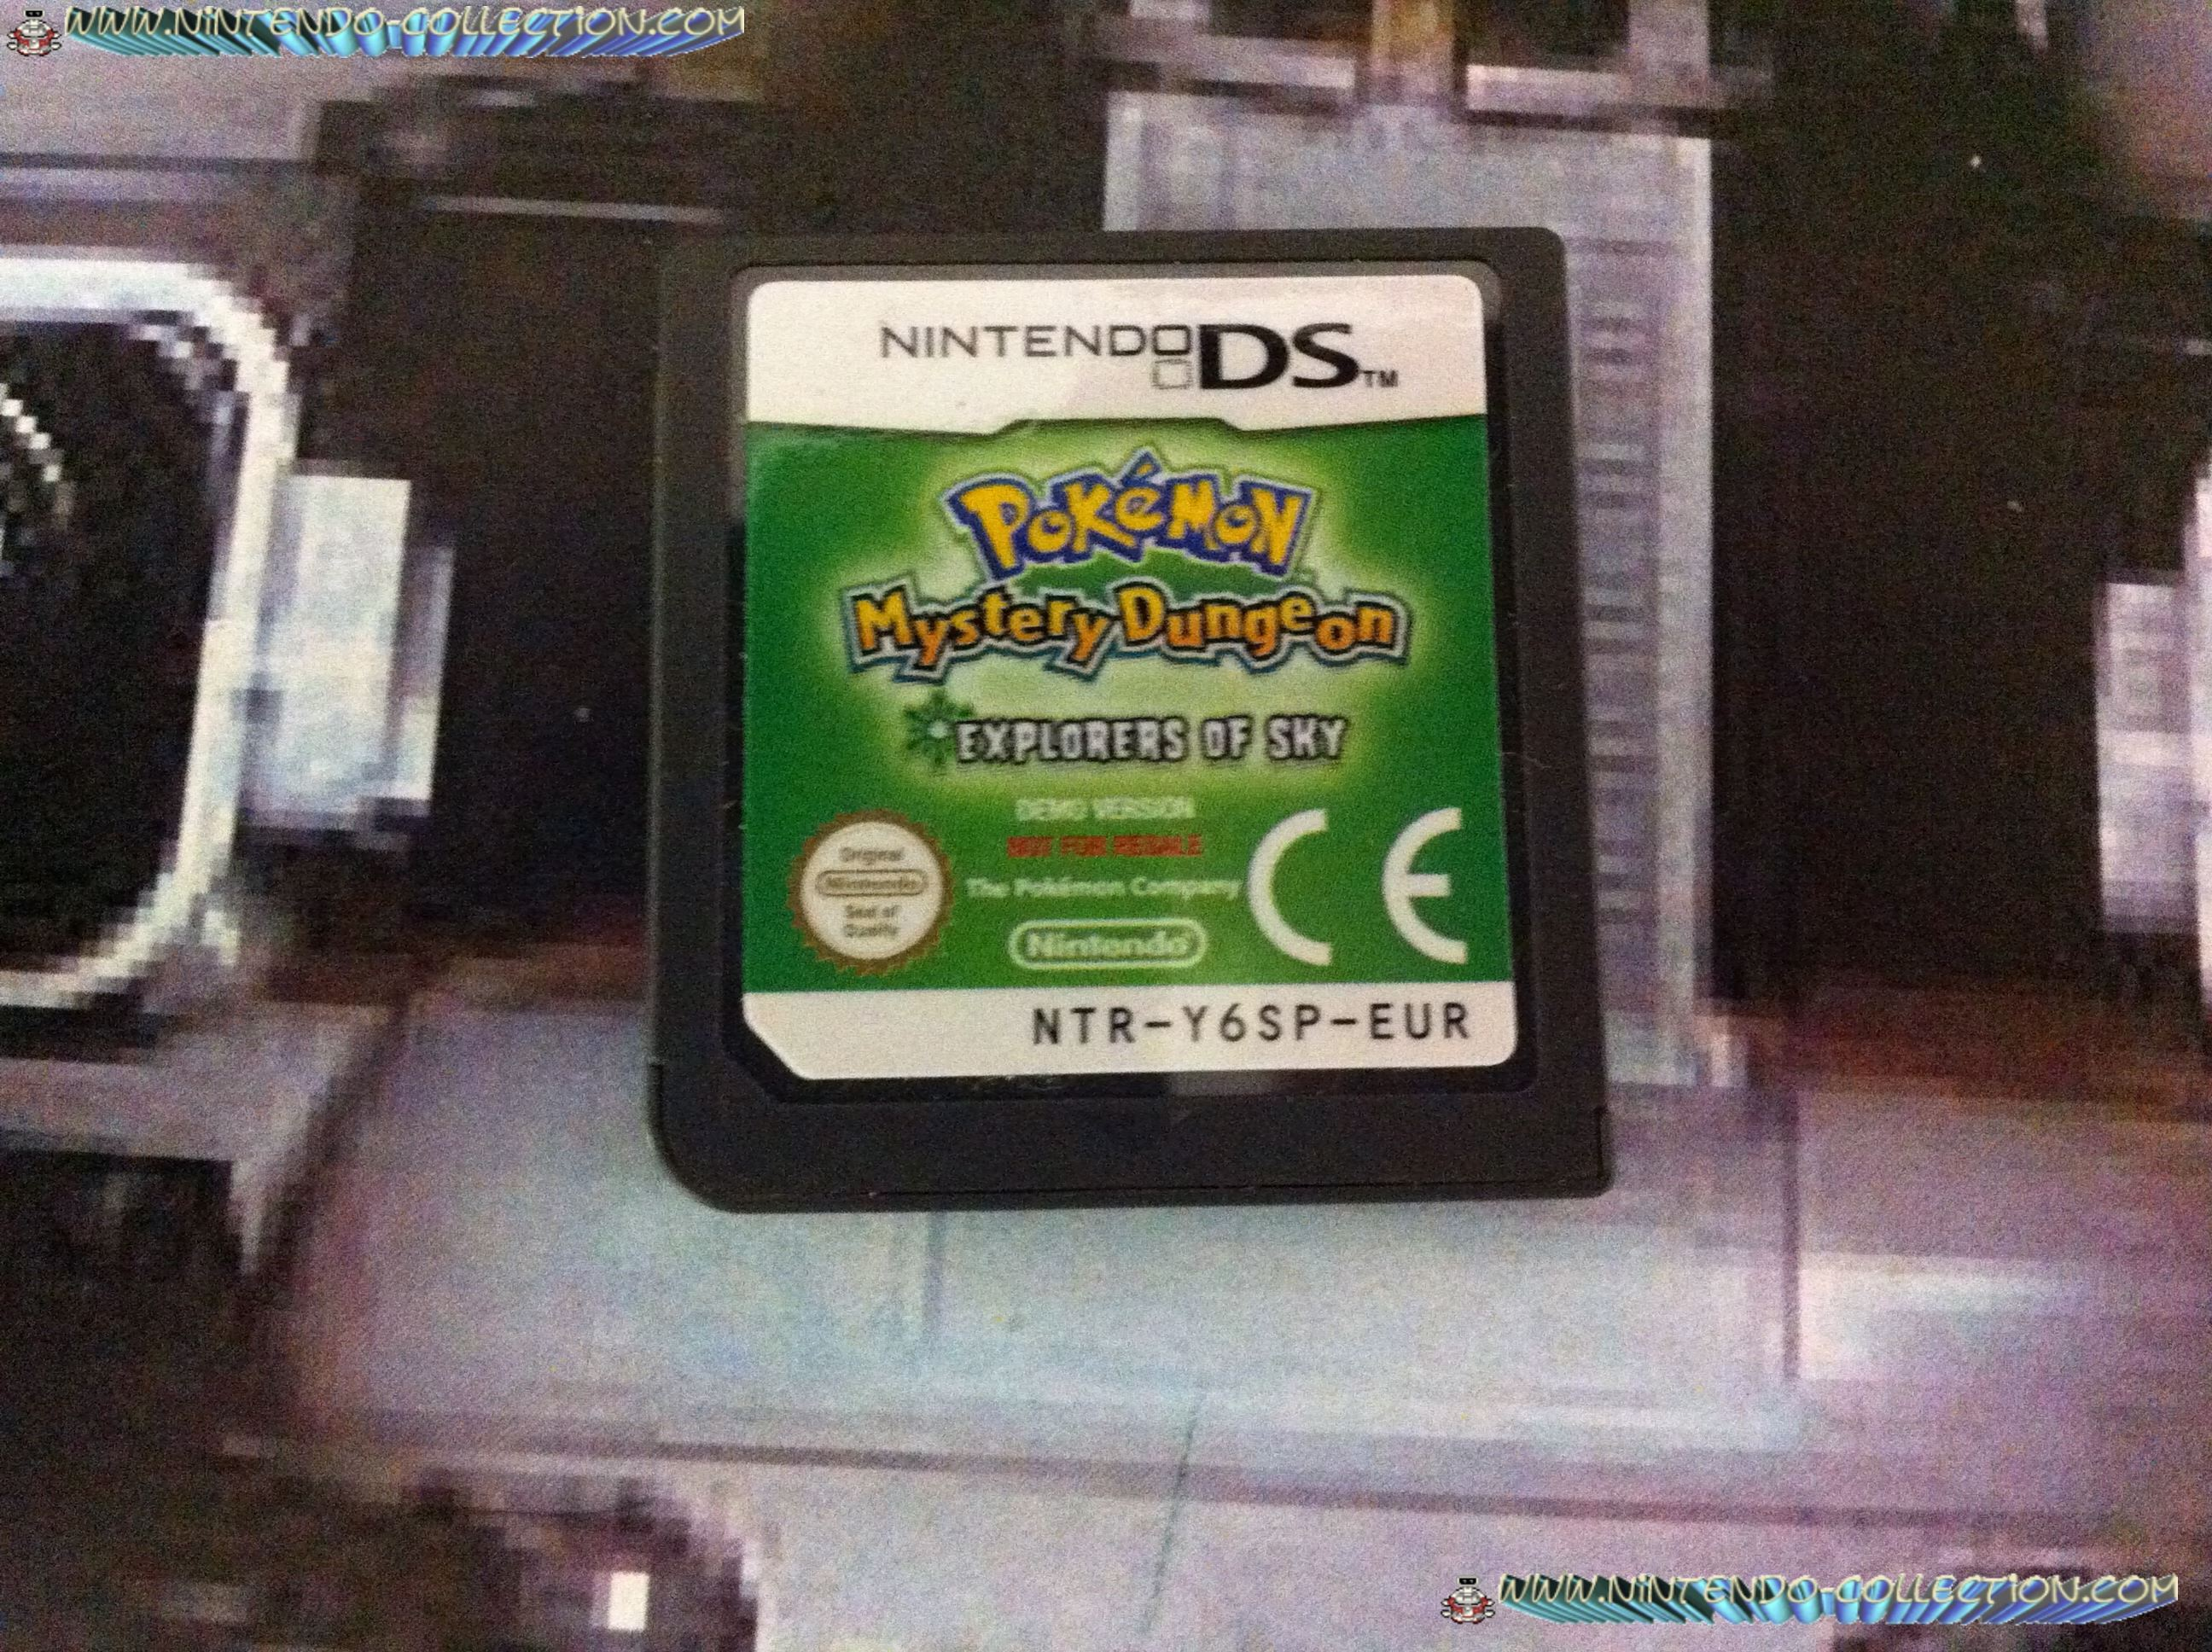 www.nintendo-collection.com - Demo DS 3DS - Not For Resale - Pokemon Mystery Dungeon Explorateurs of